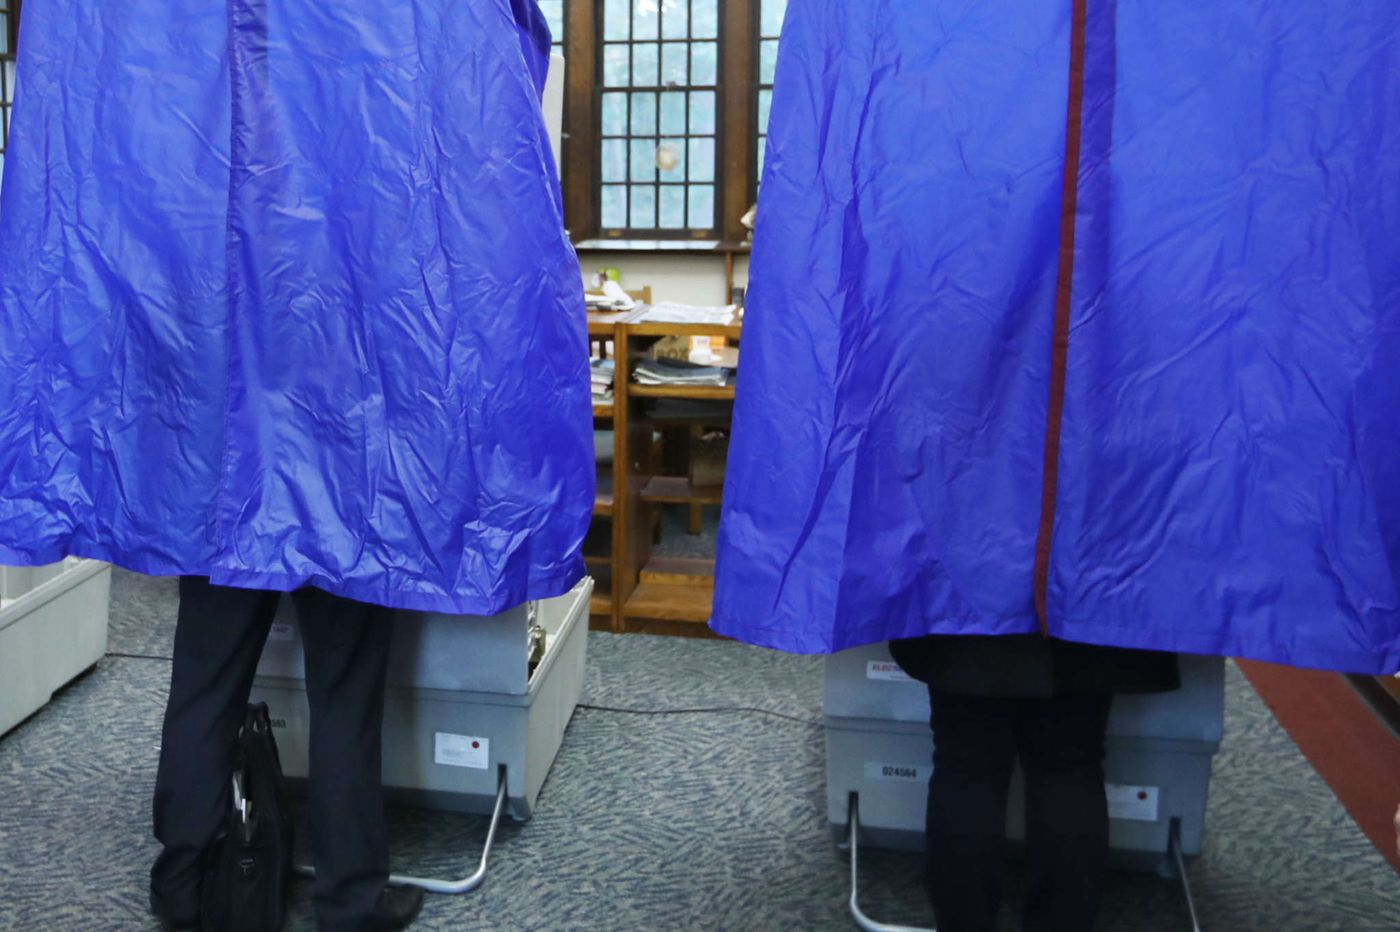 The case for same-day voter registration in Pa. | Opinion